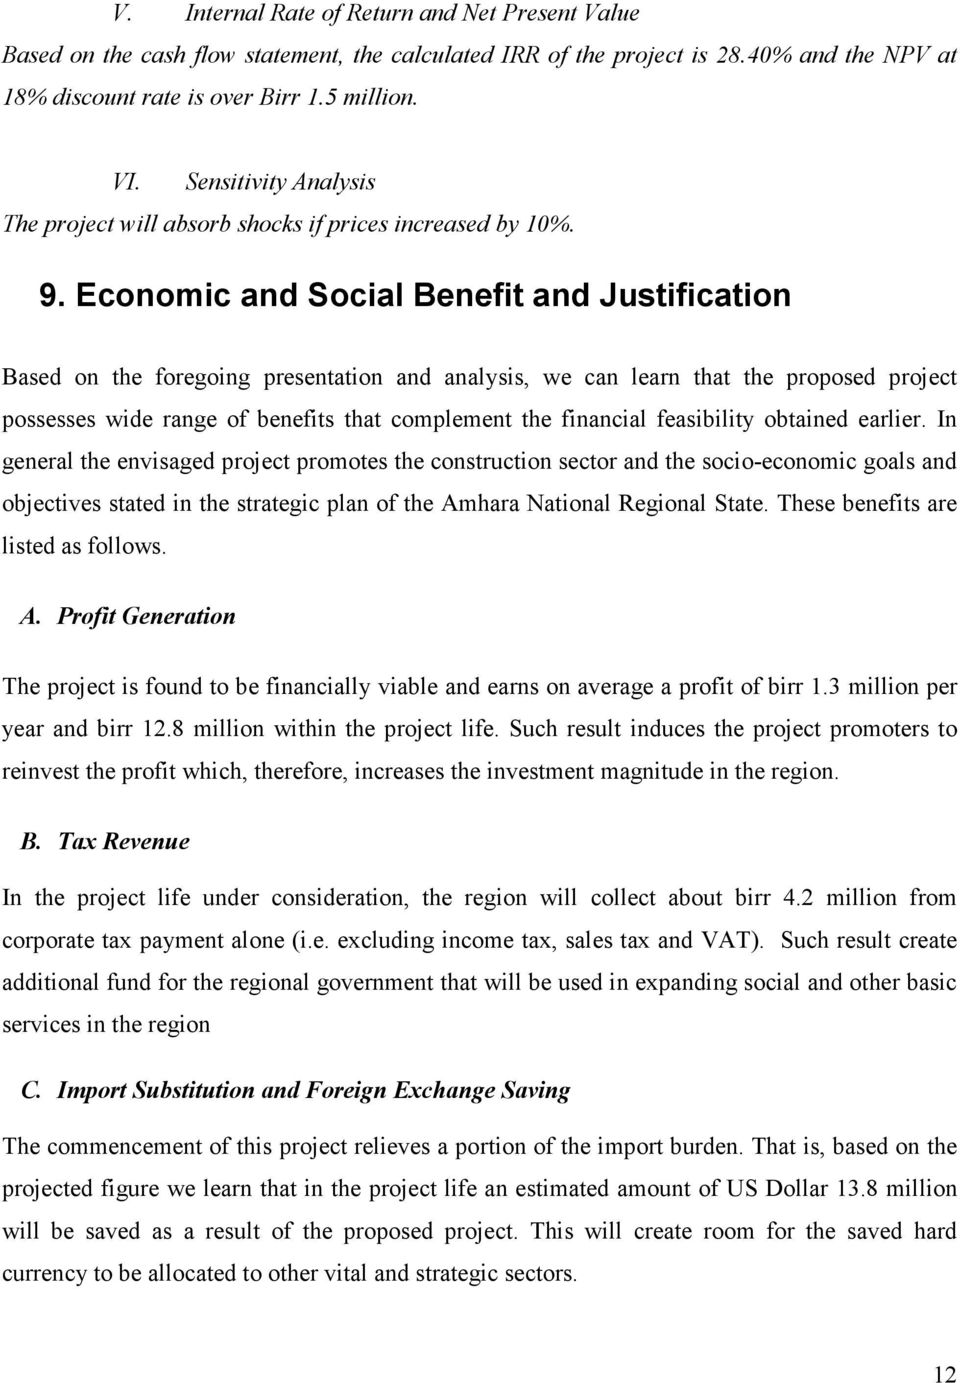 Economic and Social Benefit and Justification Based on the foregoing presentation and analysis, we can learn that the proposed project possesses wide range of benefits that complement the financial